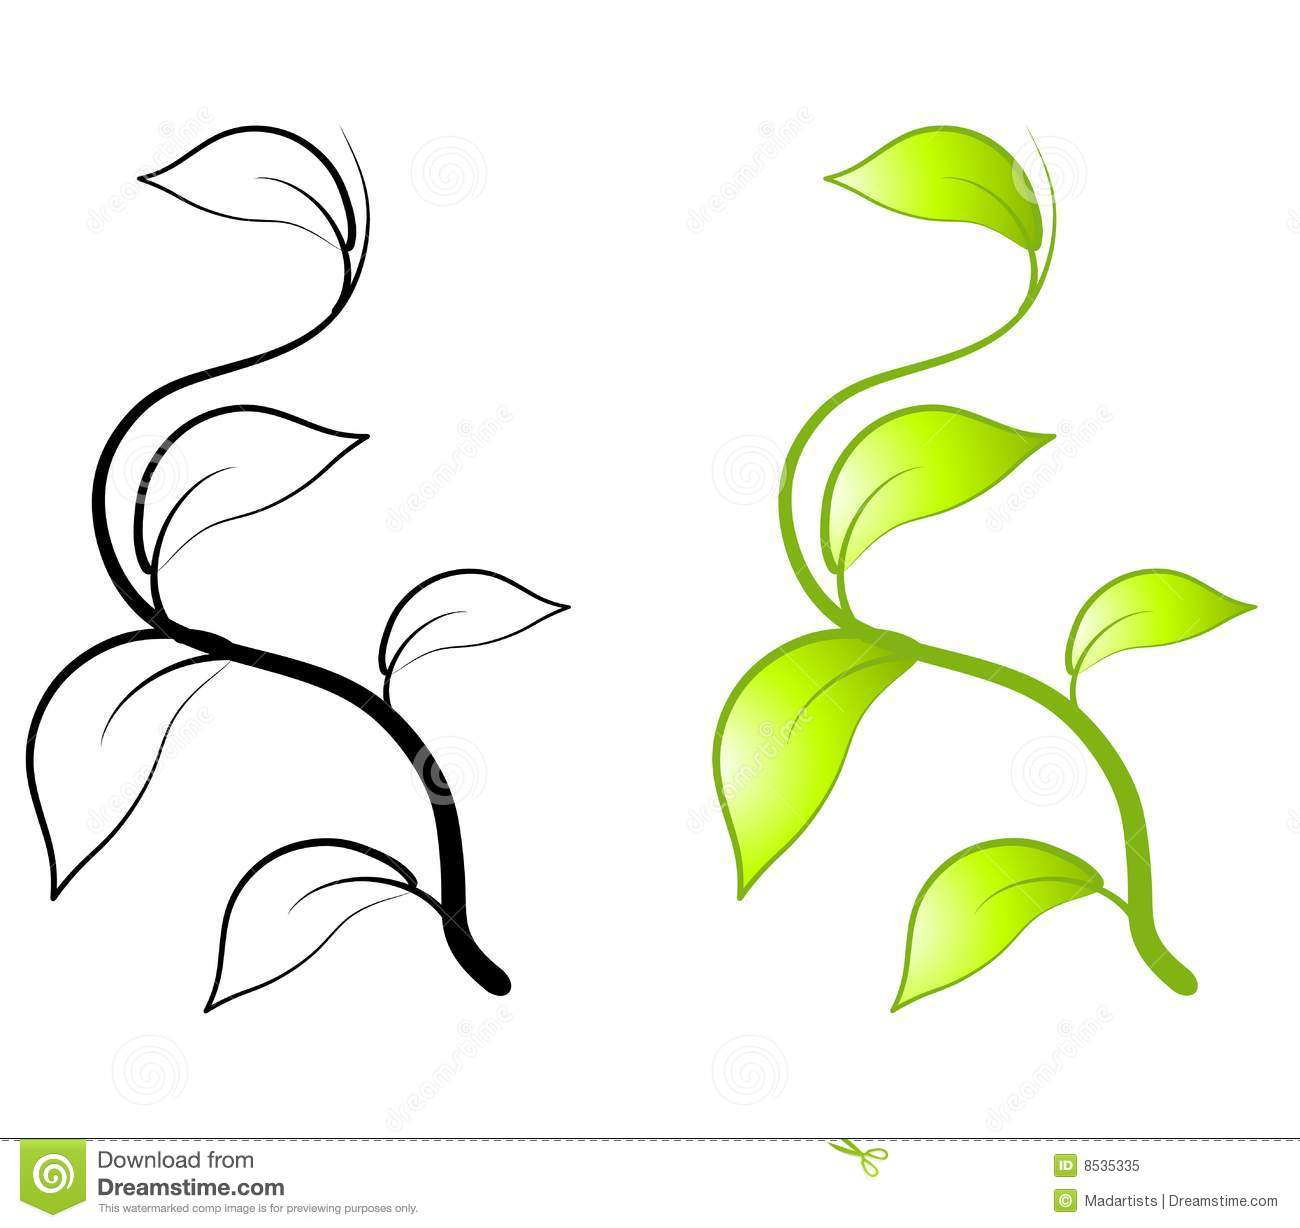 Leaf Vine Clip Art Http   Www Dreamstime Com Royalty Free Stock Photo